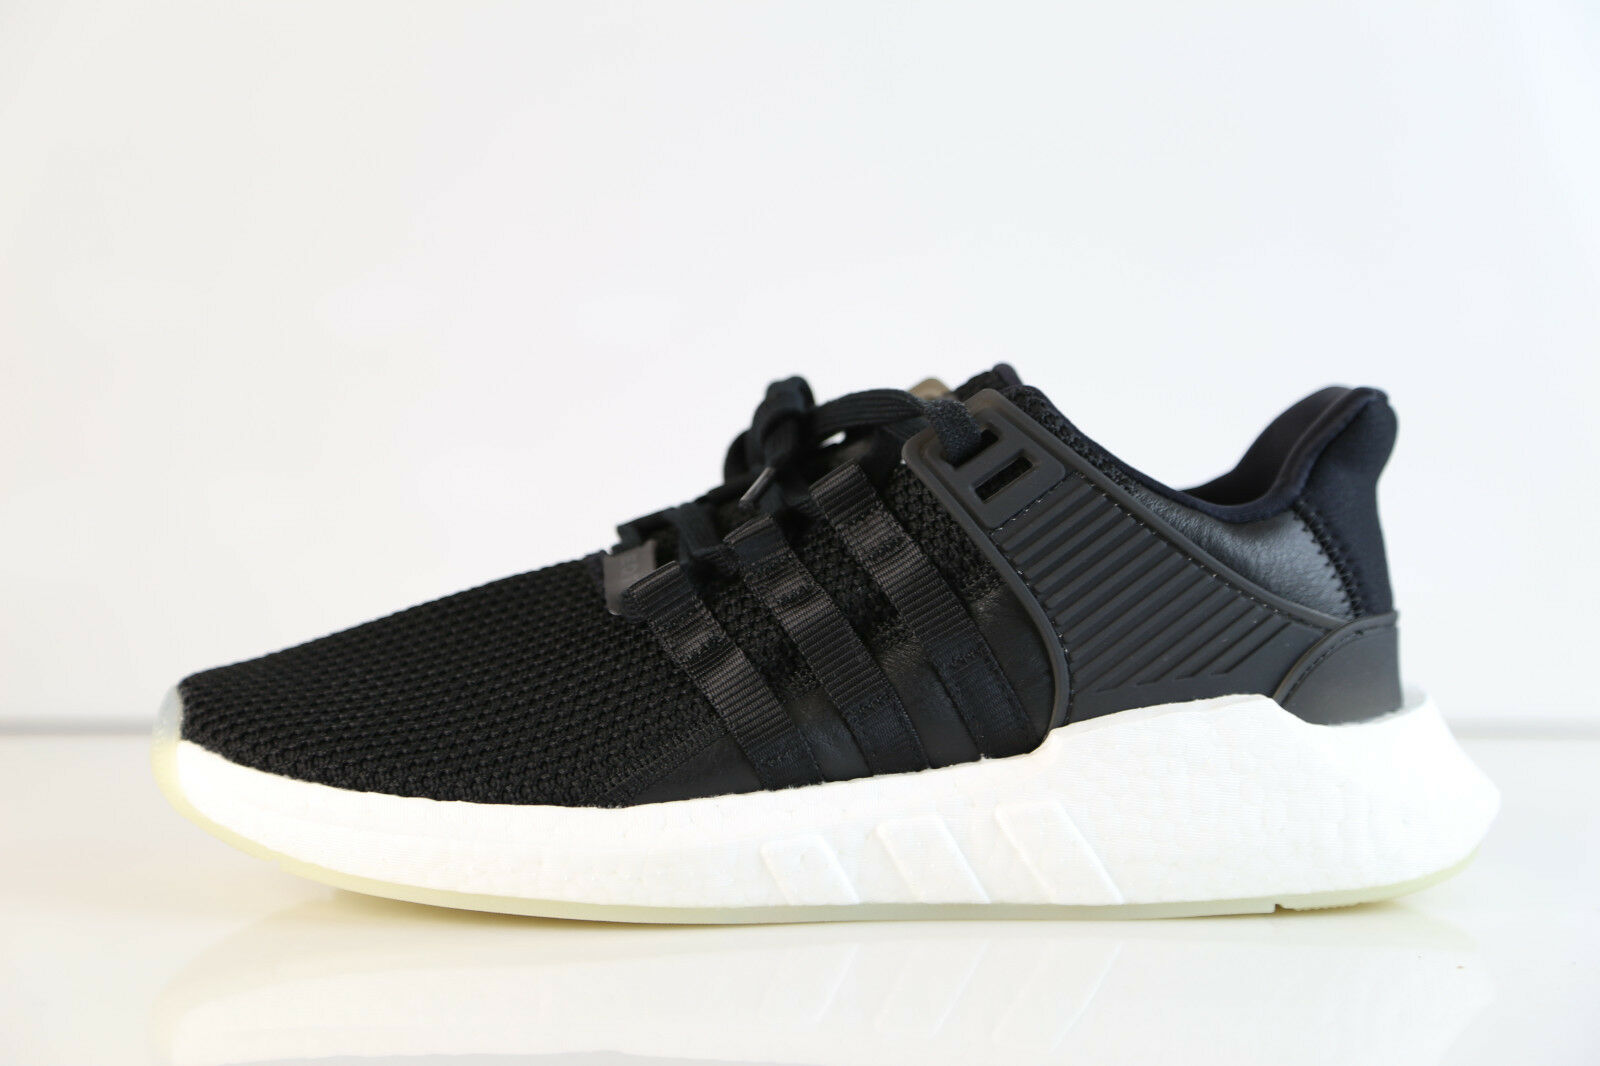 Adidas EQT Support Boost 93/17 Core Black White BZ0585 6-13 pk nmd equipment 1